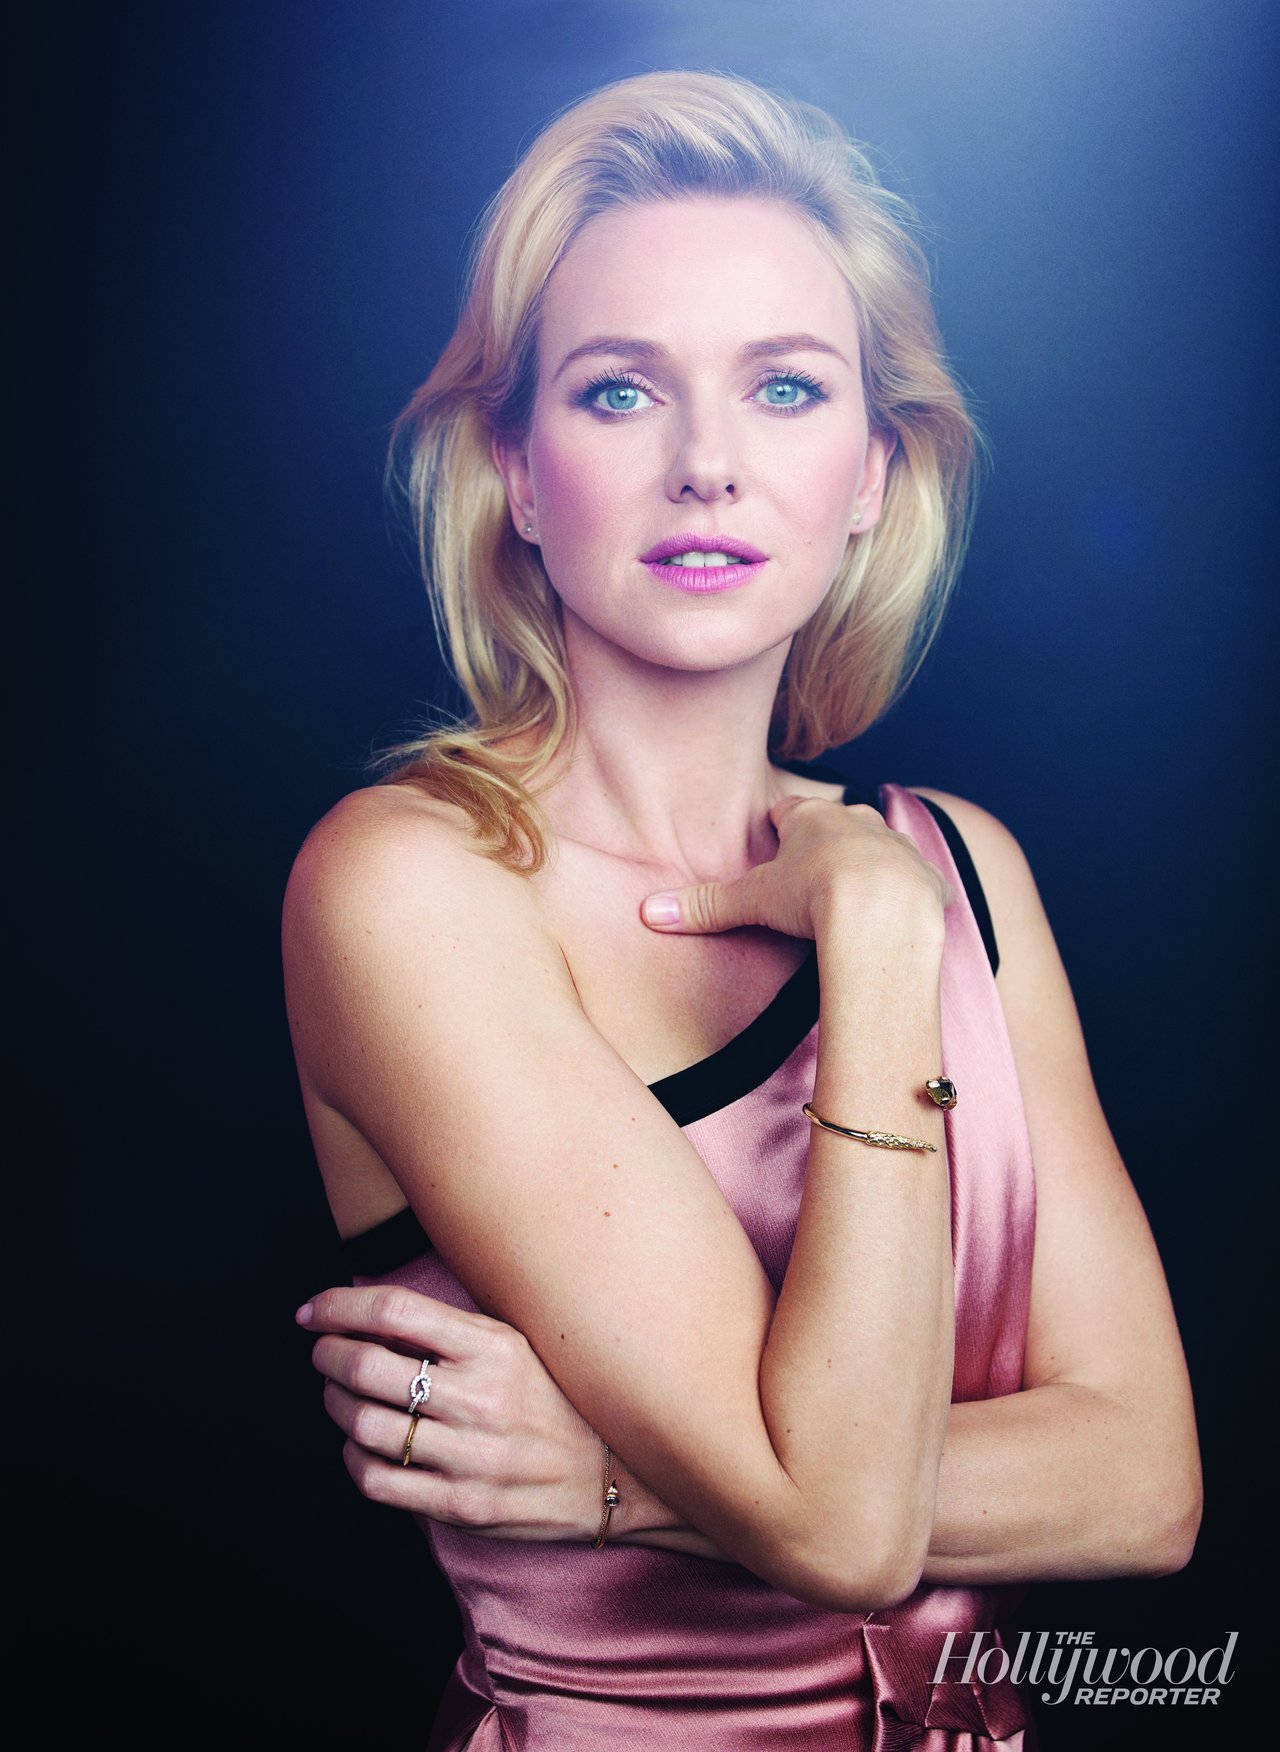 Naomi Watts - The Hollywood Reporter by Joe Pugliese, November 19th 2012